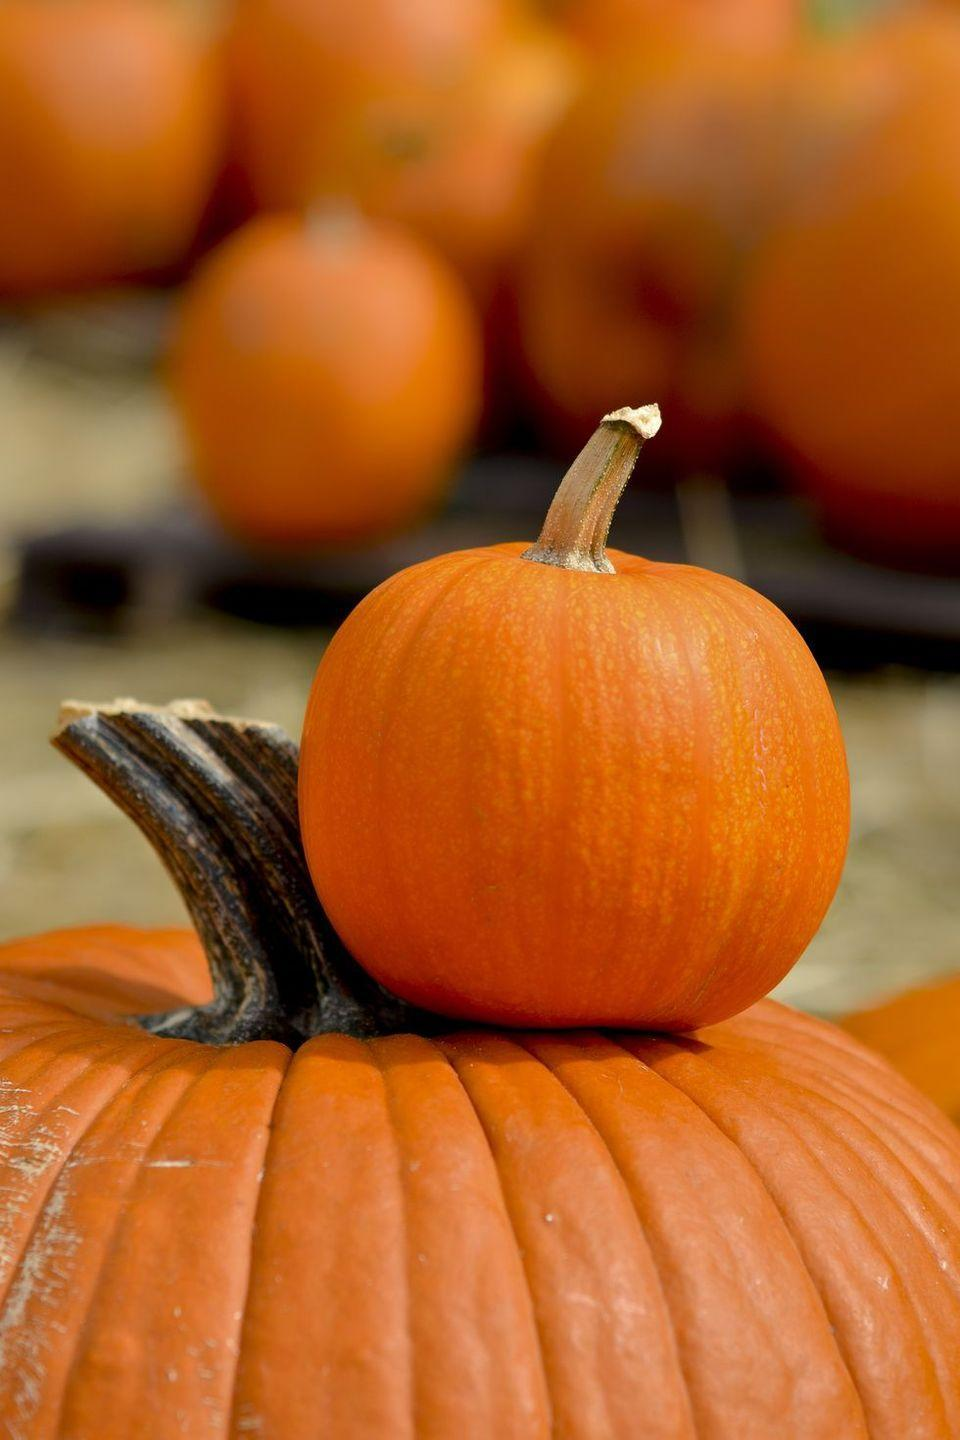 """<p>Answer: Halloween wouldn't be the same <a href=""""https://www.womansday.com/home/crafts-projects/g950/funny-pumpkin-carving-ideas/"""" rel=""""nofollow noopener"""" target=""""_blank"""" data-ylk=""""slk:without pumpkins,"""" class=""""link rapid-noclick-resp"""">without pumpkins,</a> and thankfully, there are plenty of gourds to go around. According to the United States Department of Agriculture's National Agricultural Statistics Service, in 2014 <a href=""""http://www.ers.usda.gov/topics/in-the-news/pumpkins-background-statistics.aspx"""" rel=""""nofollow noopener"""" target=""""_blank"""" data-ylk=""""slk:the top pumpkin-producing states"""" class=""""link rapid-noclick-resp"""">the top pumpkin-producing states</a> — Illinois, California, Ohio, New York, Pennsylvania, and Michigan — produced 1.31 billion pounds of pumpkins.<br></p>"""